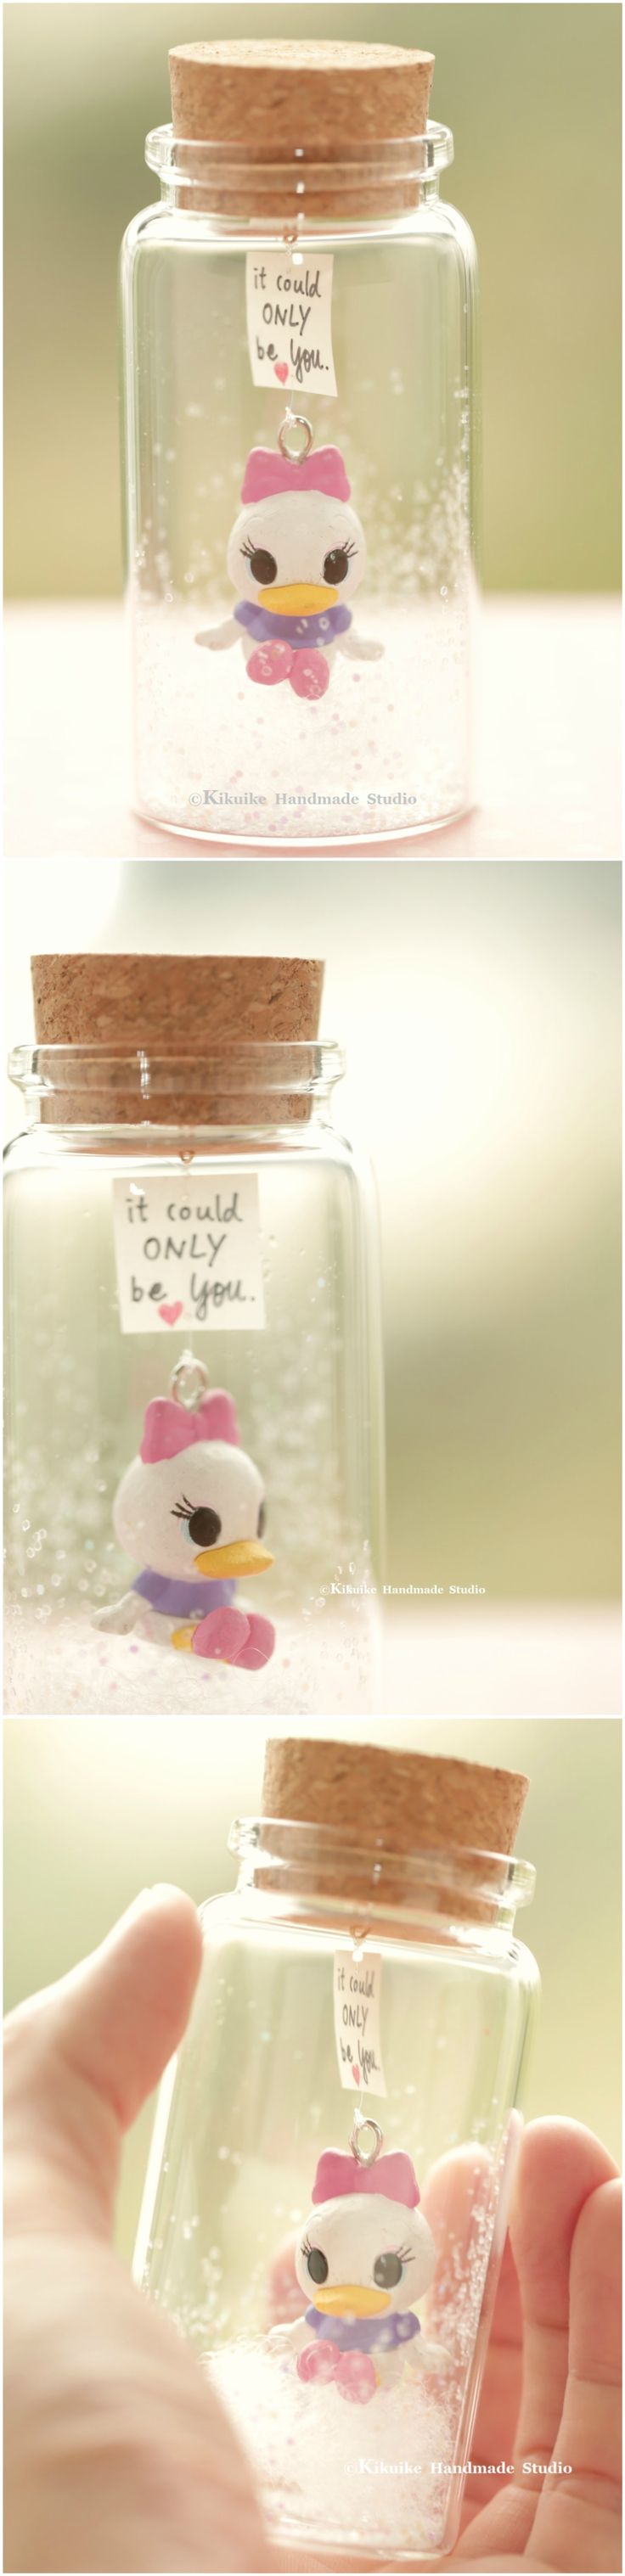 It could only be you,Tiny message in a bottle,Miniatures,Personalised Gift,funny love card,Valentine Card,Gift for her/him,Girlfriend gift, birthday gift, message card and miniatures card ideas #duck #DaisyDuck #cartoons #handmade #custom #unique #cute  #art #gold #messagecard #homedecor #deskdecor #glitter #lovecard #sweet #greetingscard #paper #seasonalcard #partygift  #personalizedgift #Longdistancegift #birthdaycard #kikuikestudio #tiny #miniatures #Daisy